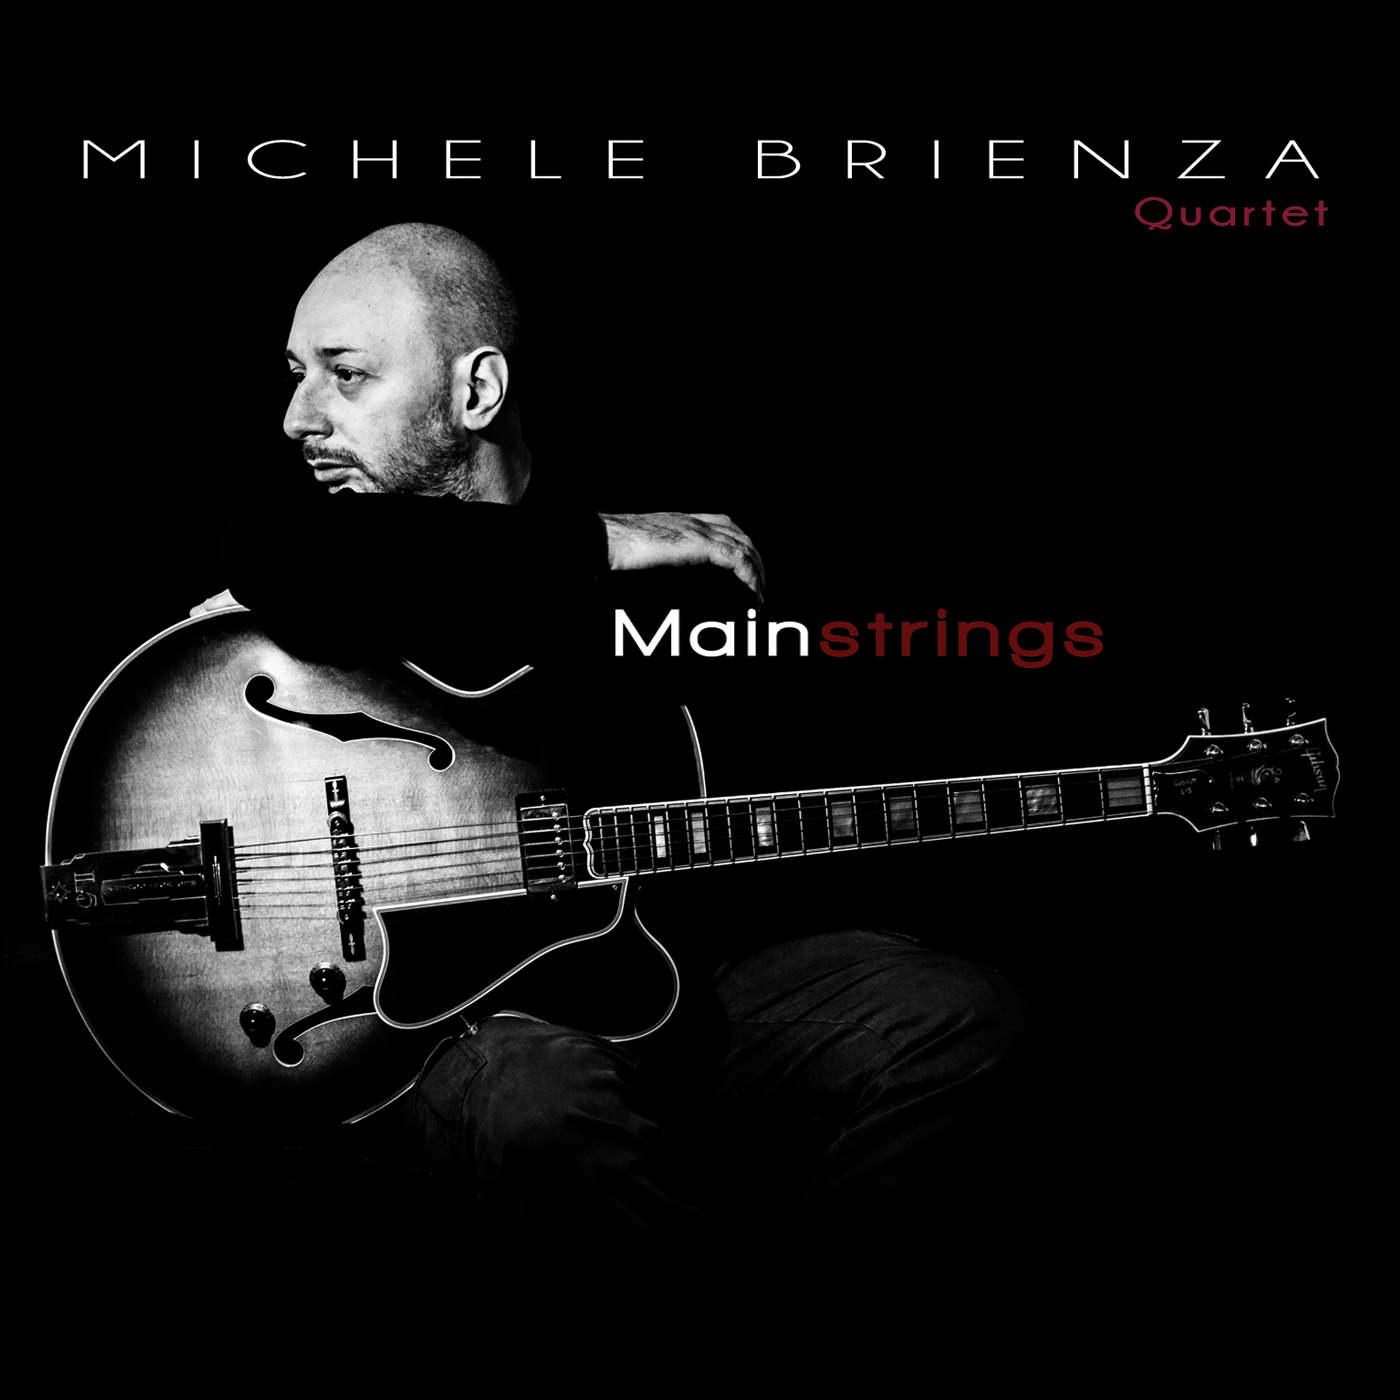 Michele Brienza